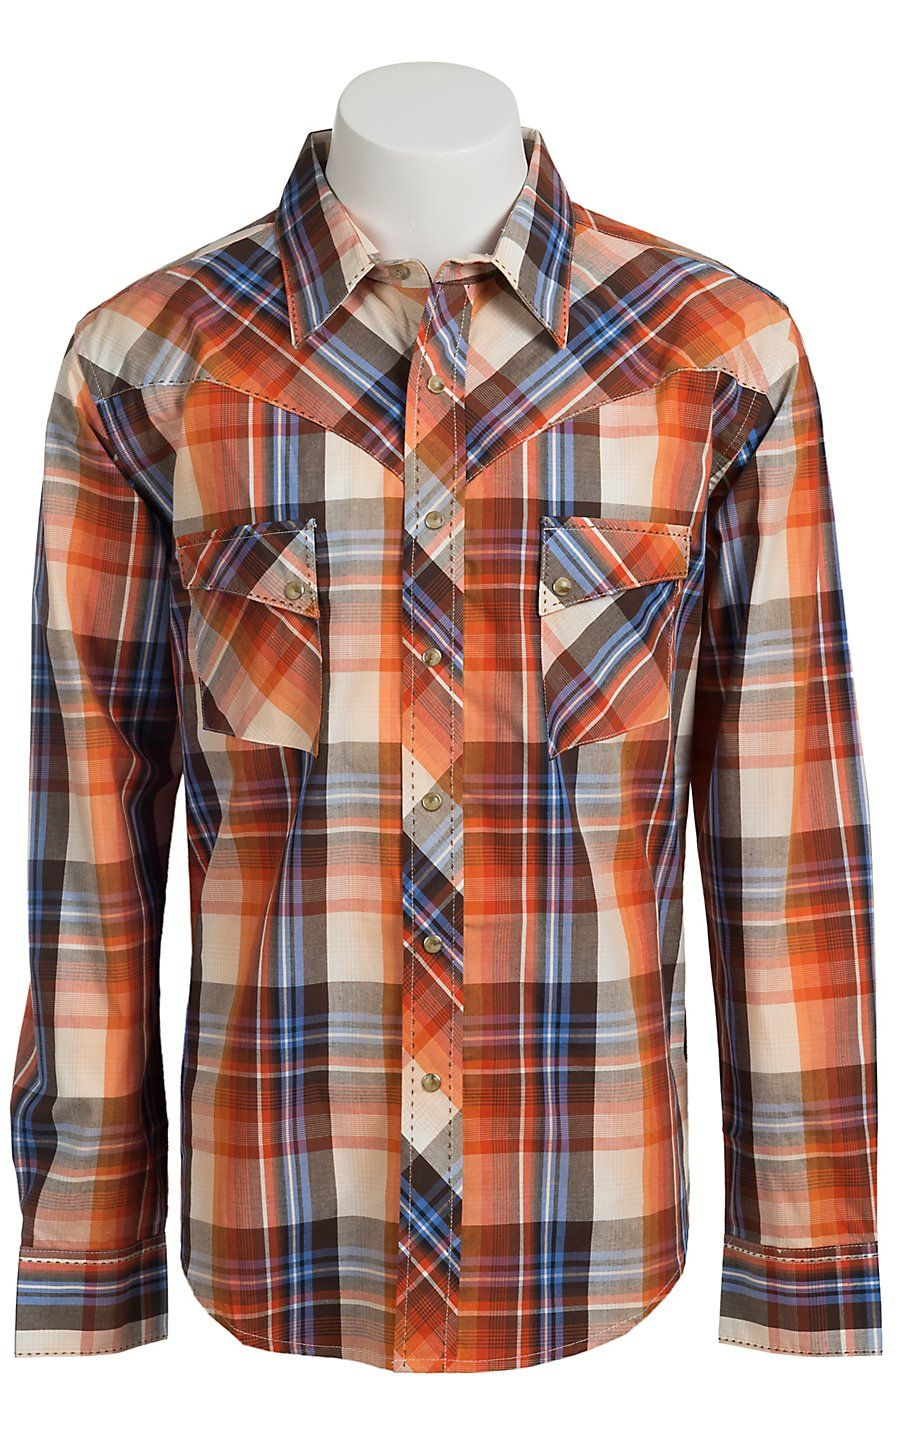 20c05b98 Wrangler Men's Vintage Blue, Orange, and Brown Plaid Western Shirt ...